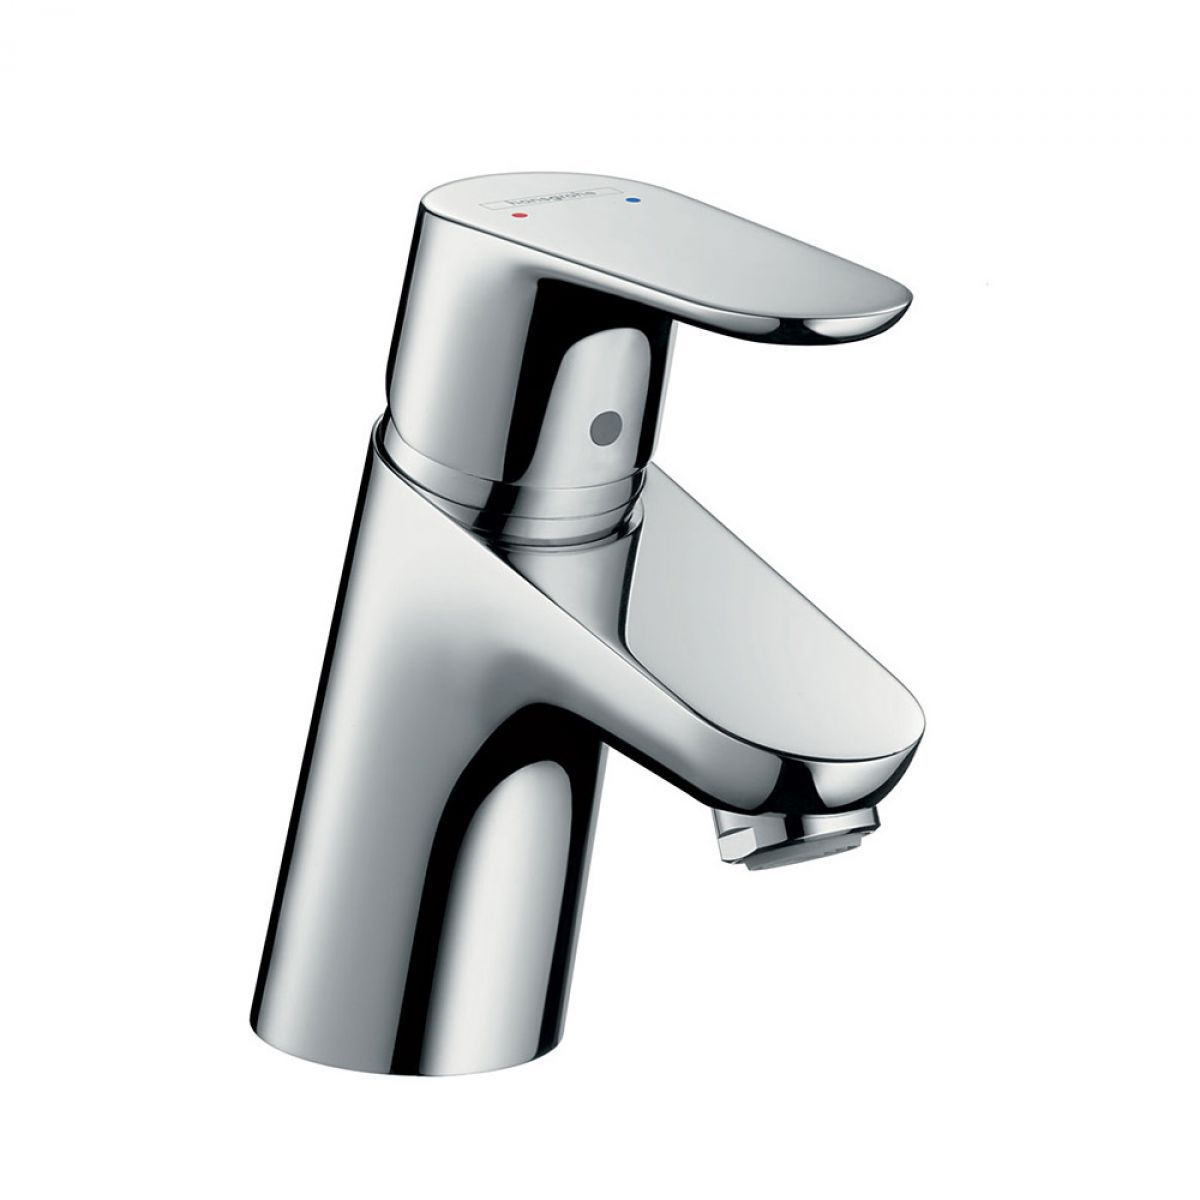 Hansgrohe Focus 70 Basin Mixer | Bathrooms Direct Yorkshire